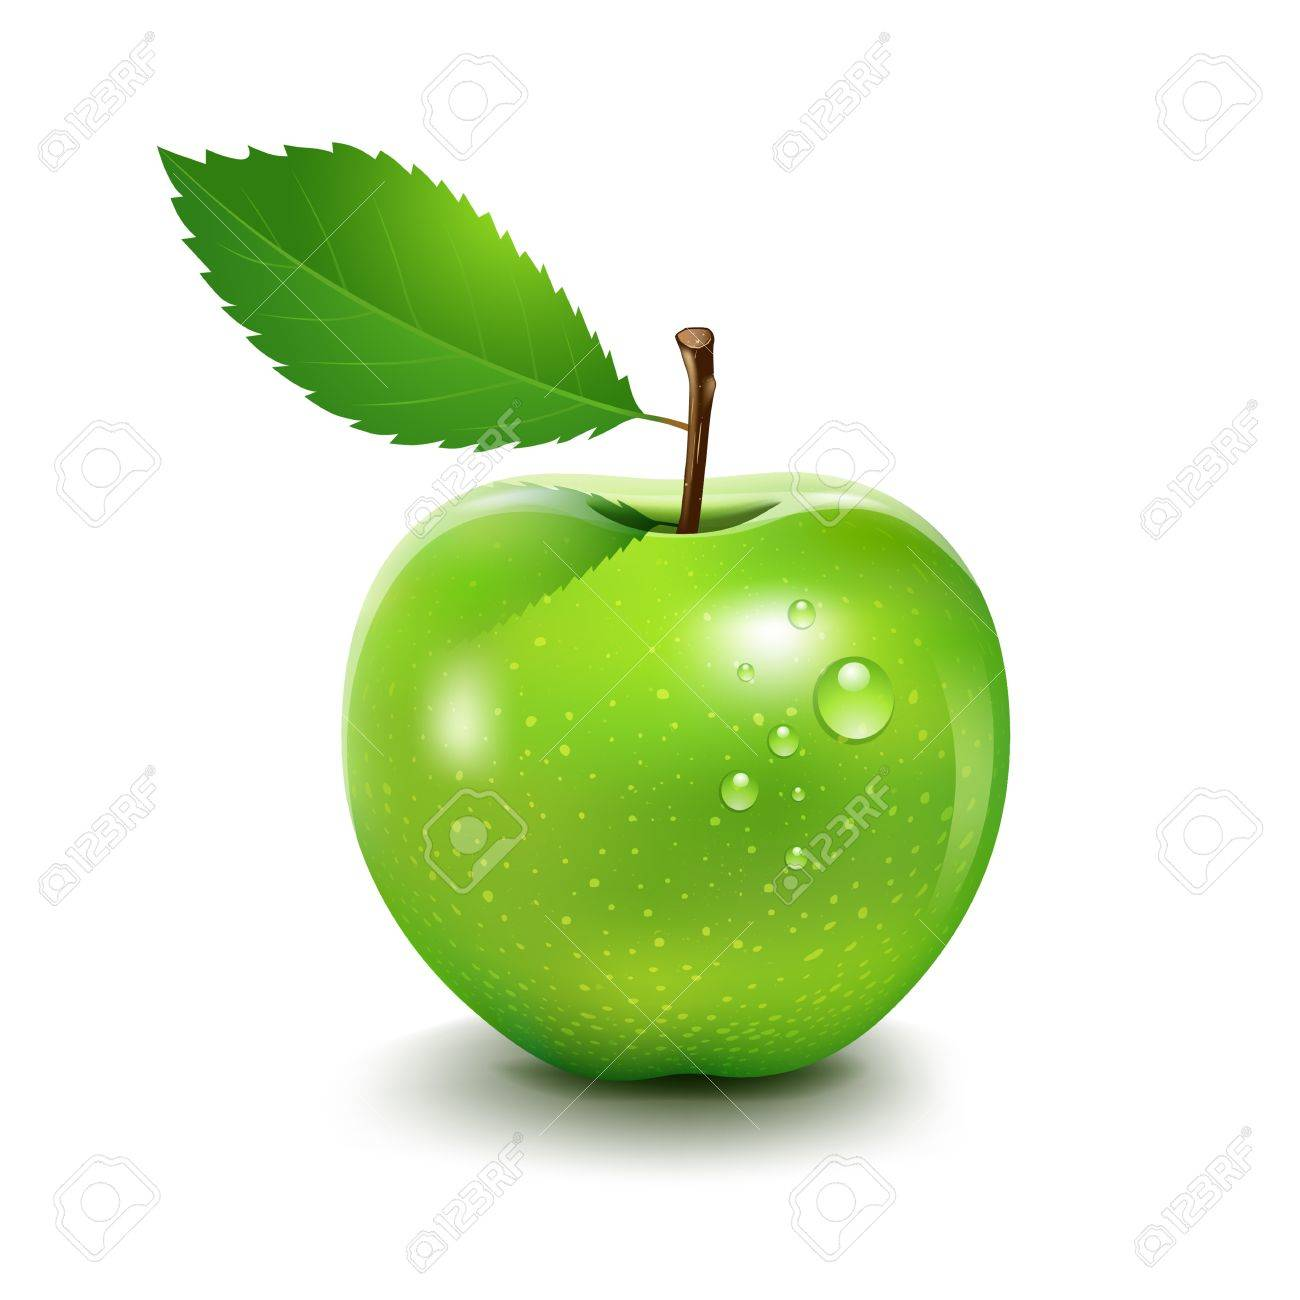 Apple and leaf, Vector illustration Stock Vector - 18713277